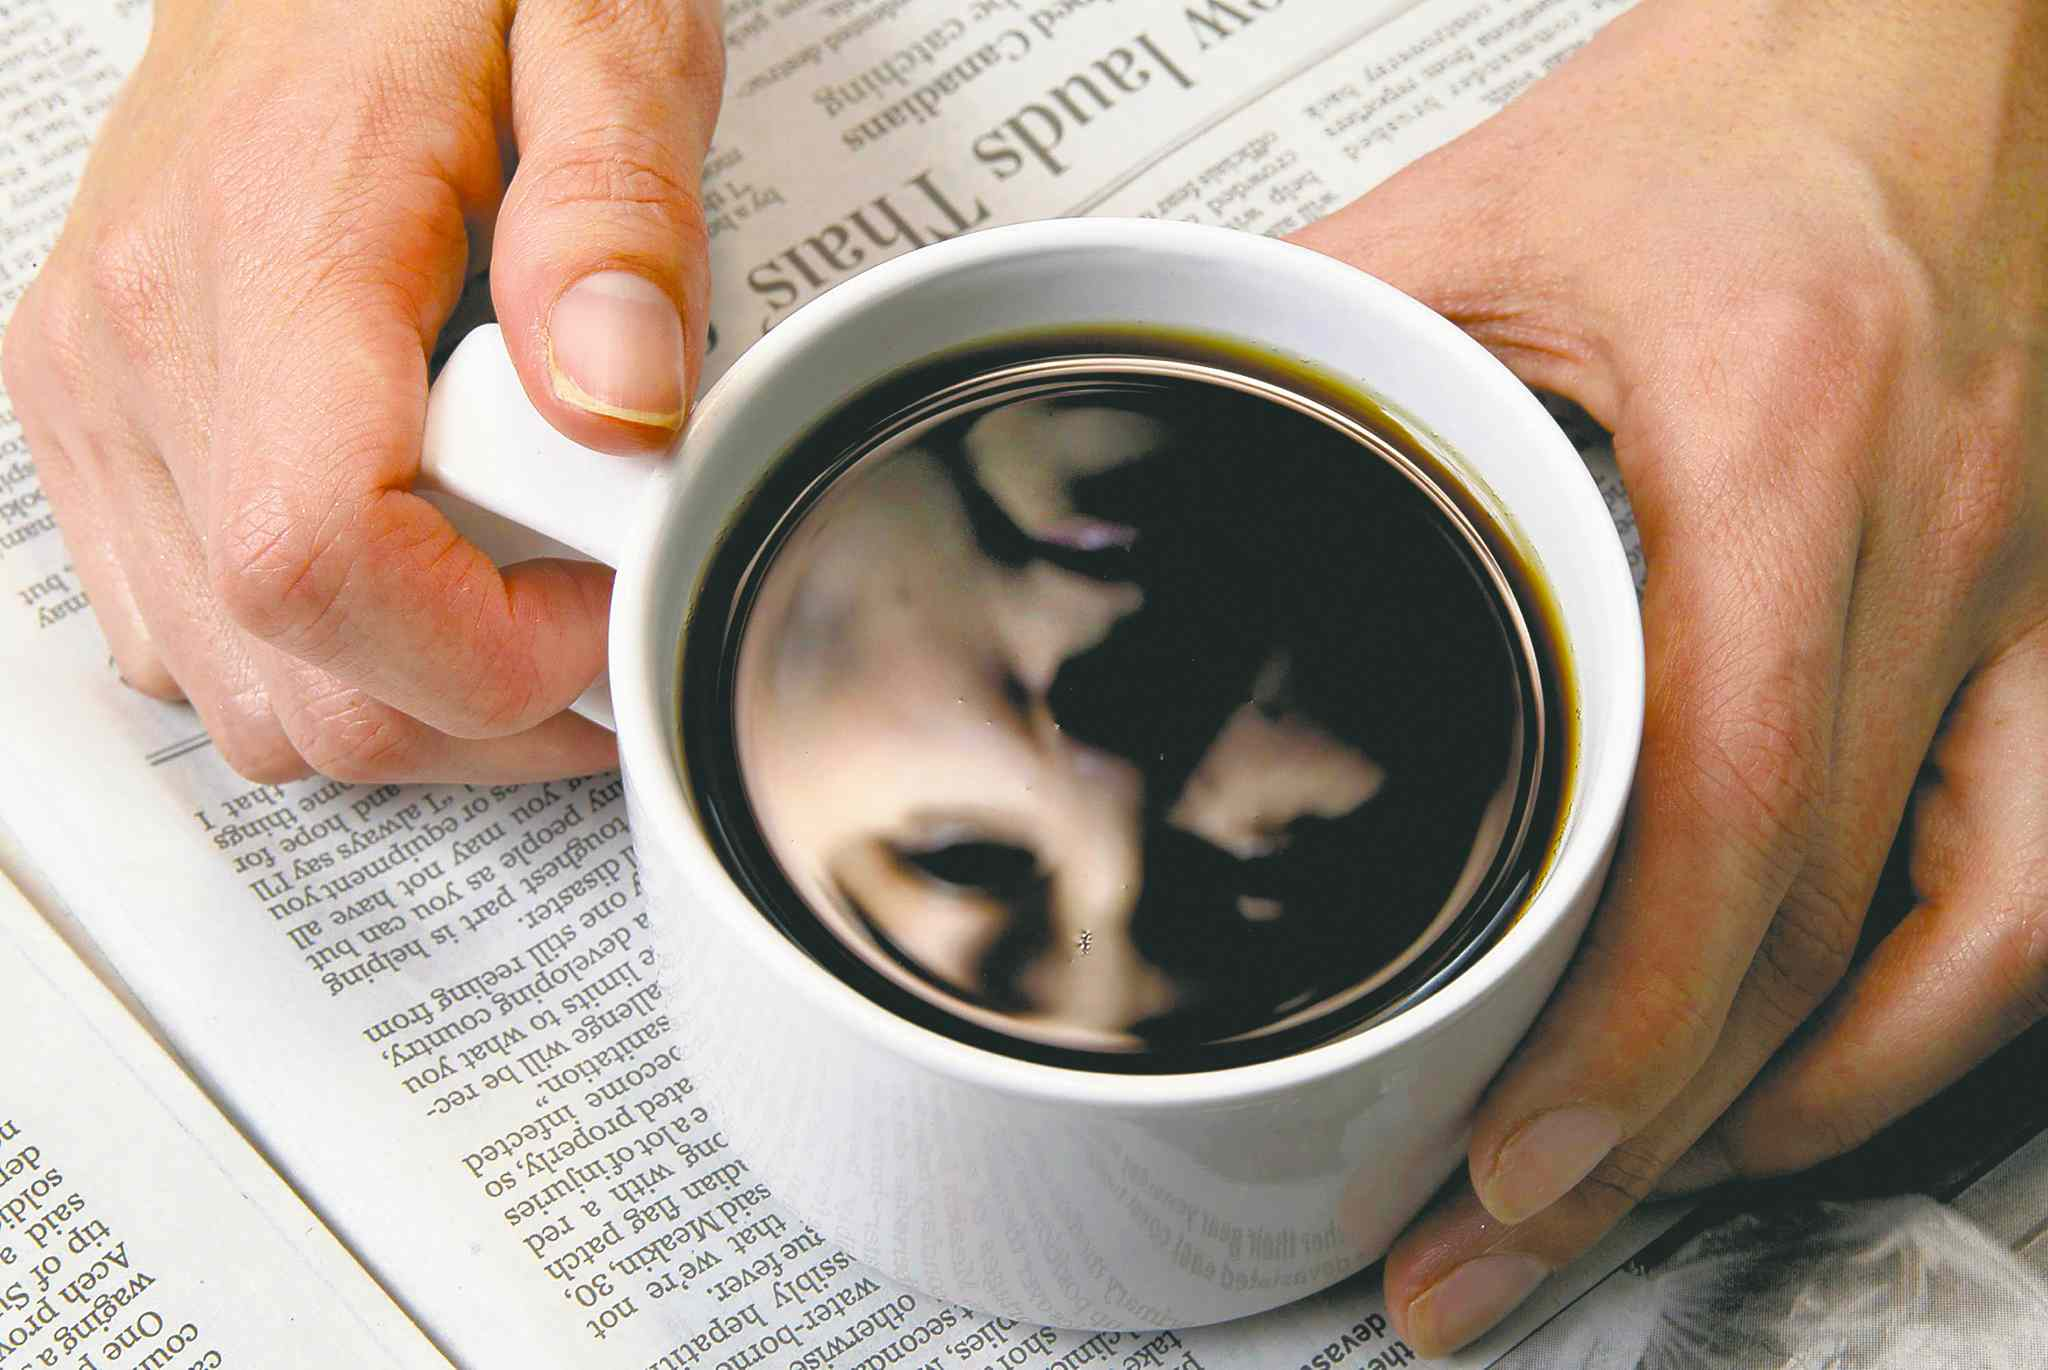 Test subjects who took caffeine pills had better success at remembering details.